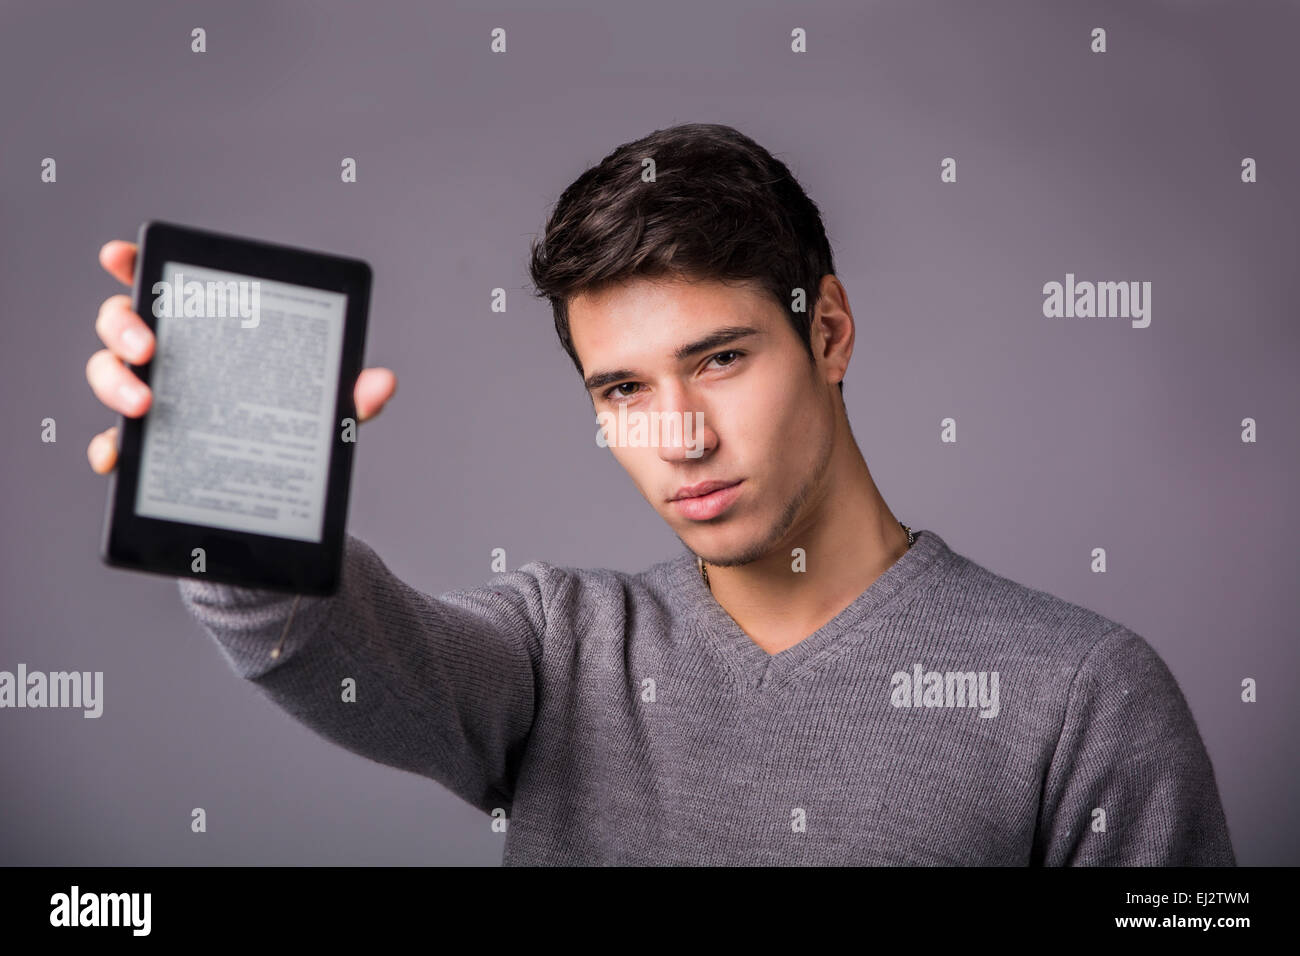 Handsome young man holding and showing ebook reader and looking at camera, sitting on grey background - Stock Image